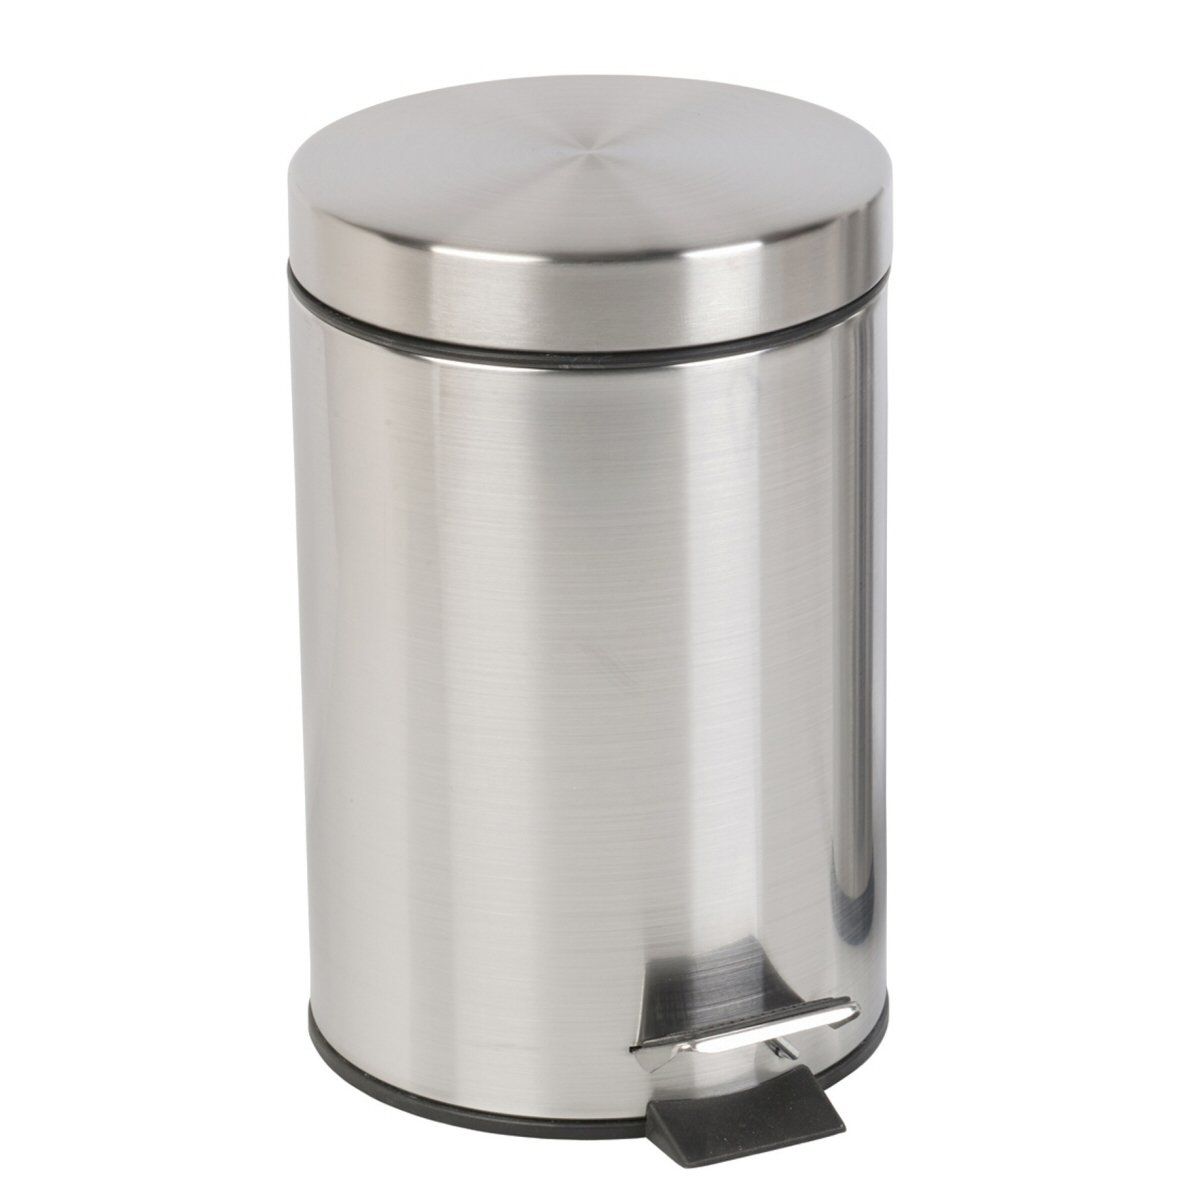 Bathroom Pedal Bin Stainless Steel Chrome Finish